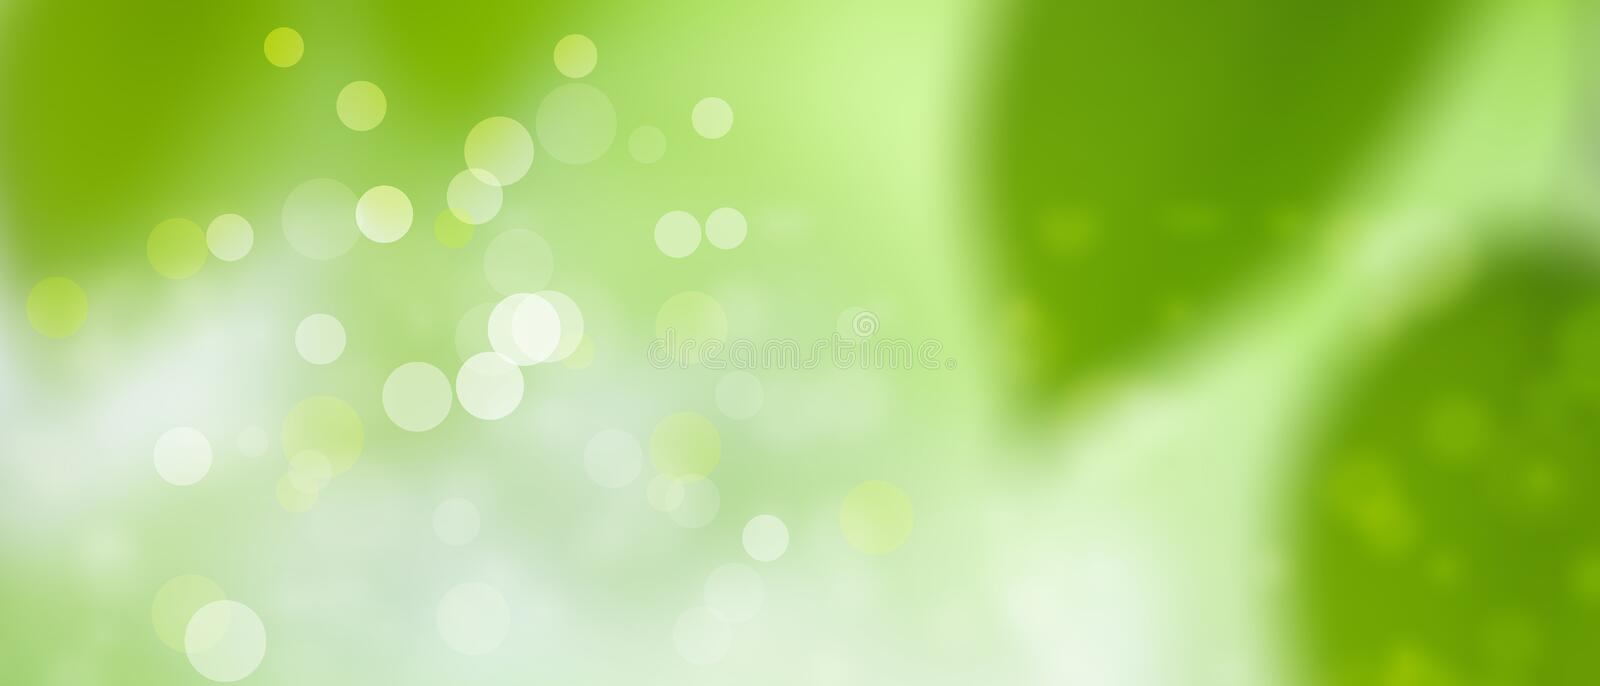 Green spring summer background - sunny and fun - Bokeh texture pt3 royalty free stock images